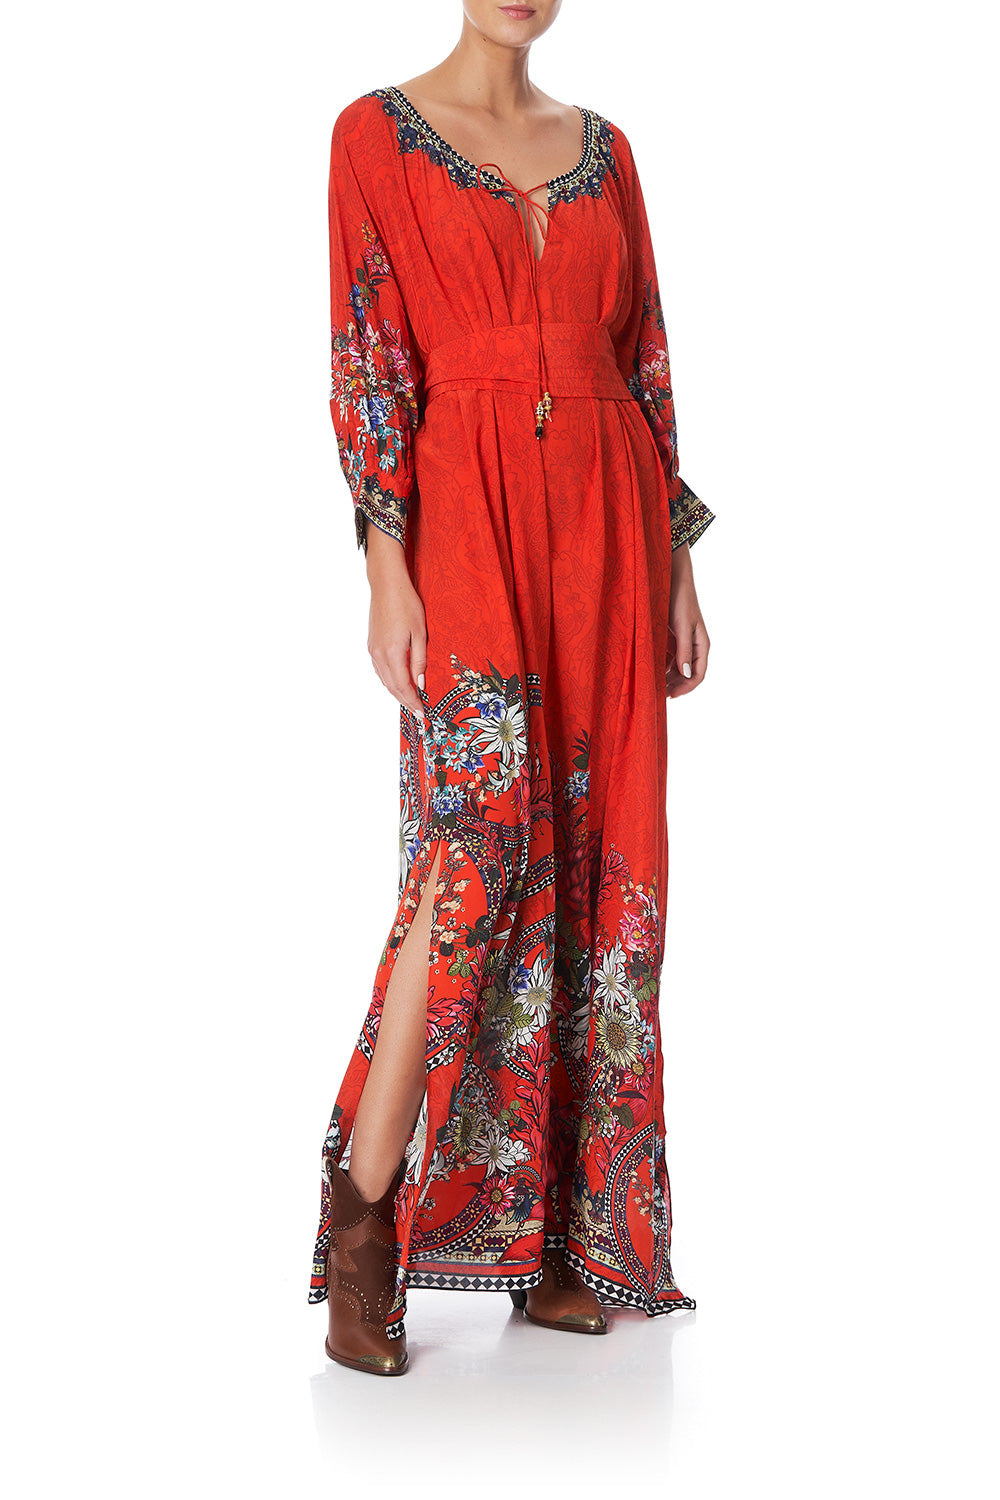 RAGLAN SLEEVE DRESS WITH CUFFS WONDERING WARATAH